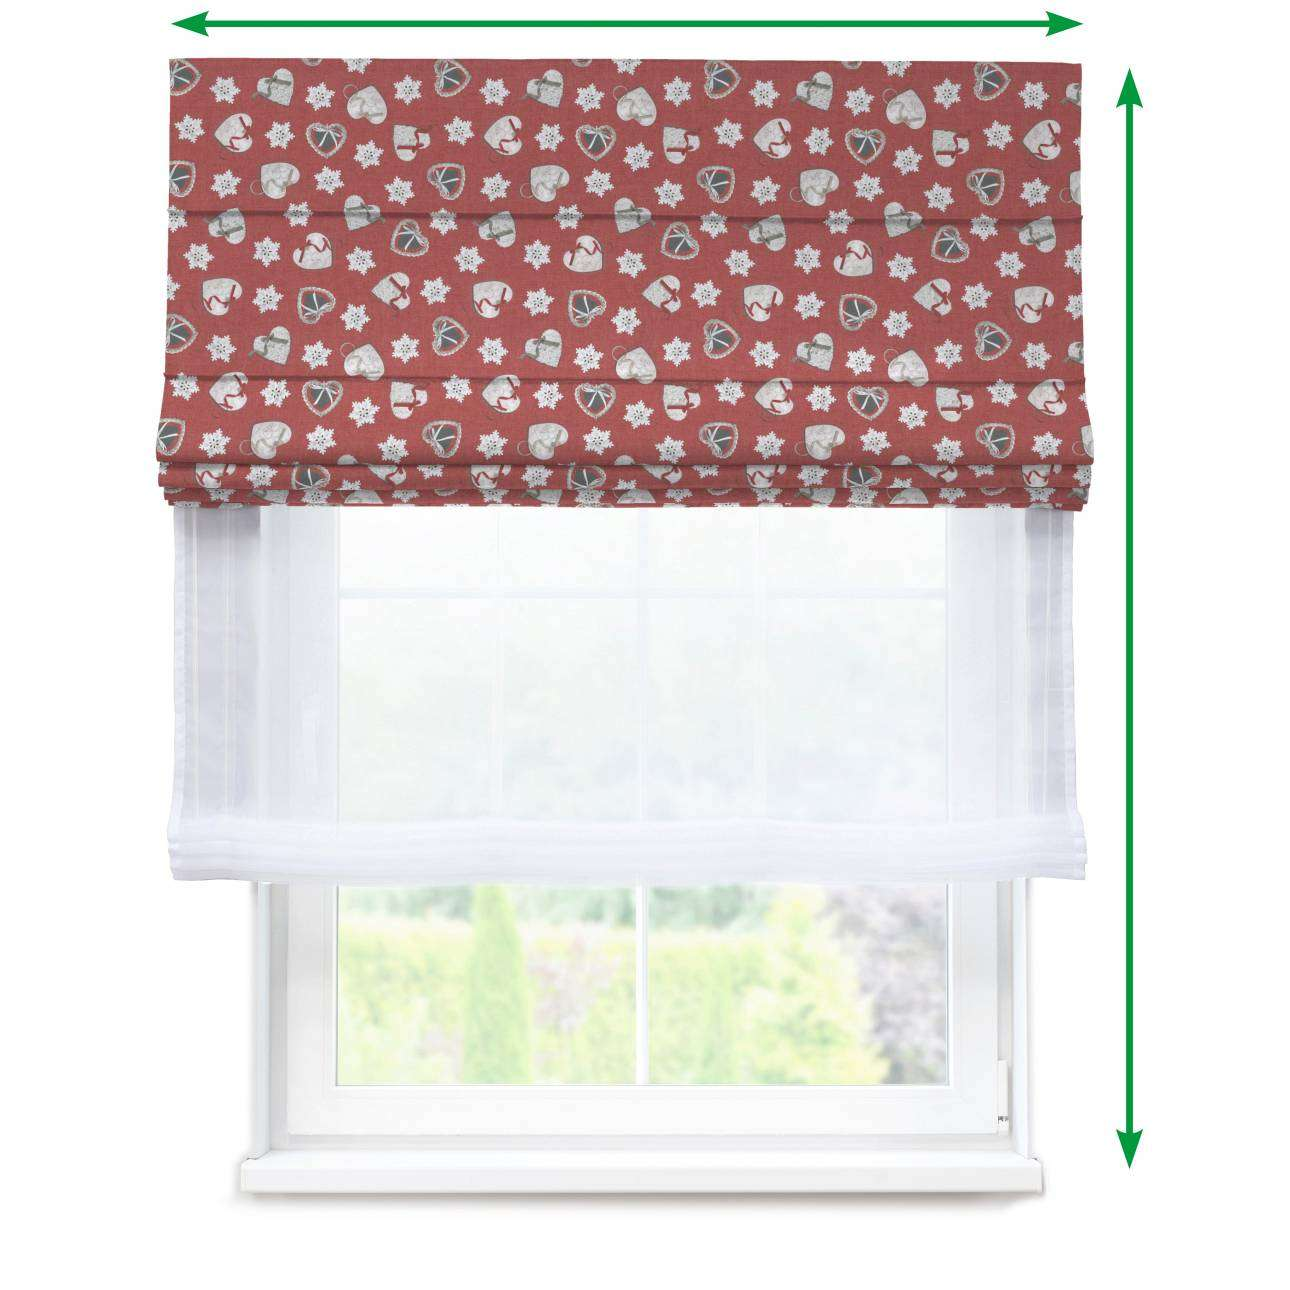 Voile and fabric roman blind (DUO II) in collection Christmas, fabric: 629-29